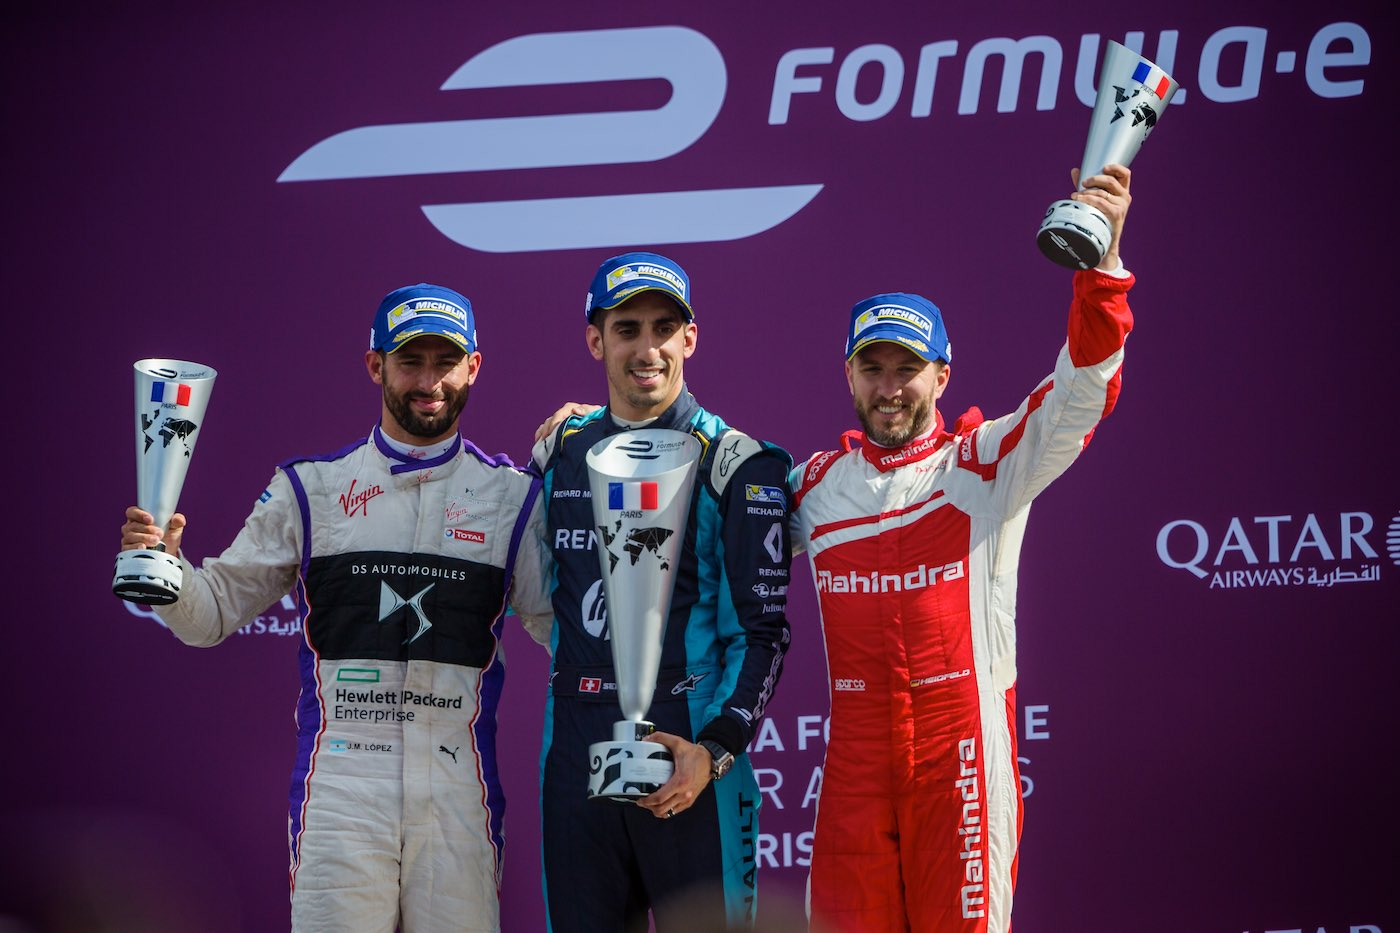 Gallery: FIA Formula E Paris